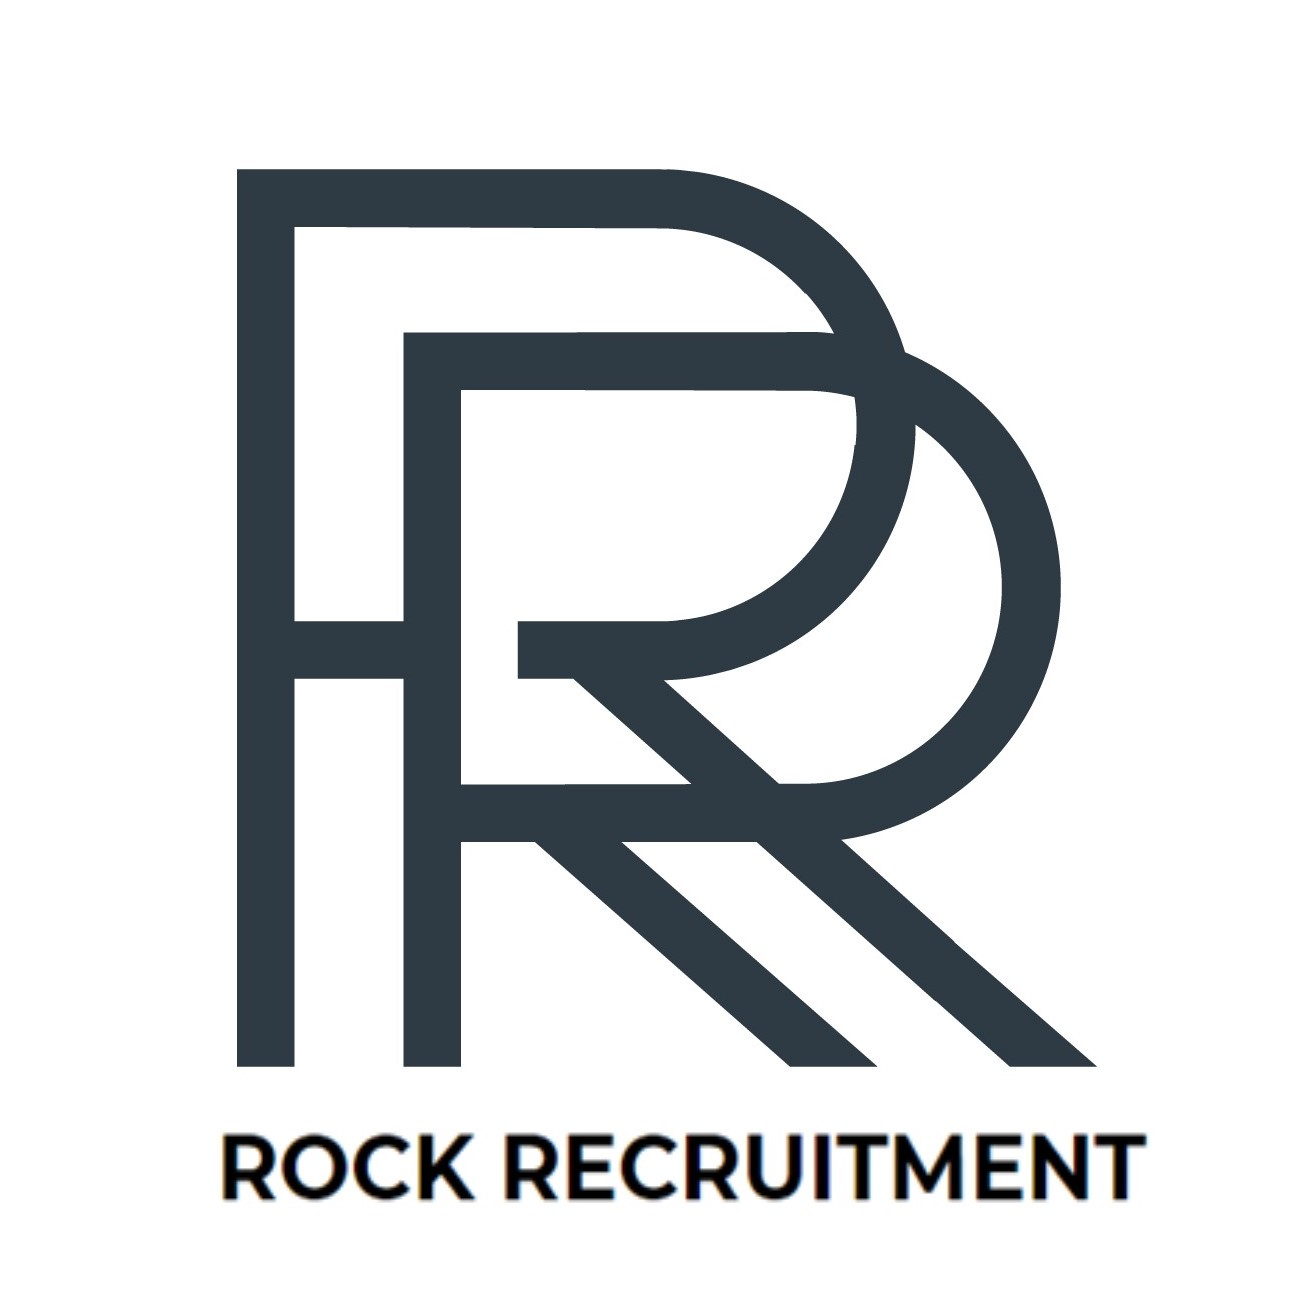 Rock Recruitment